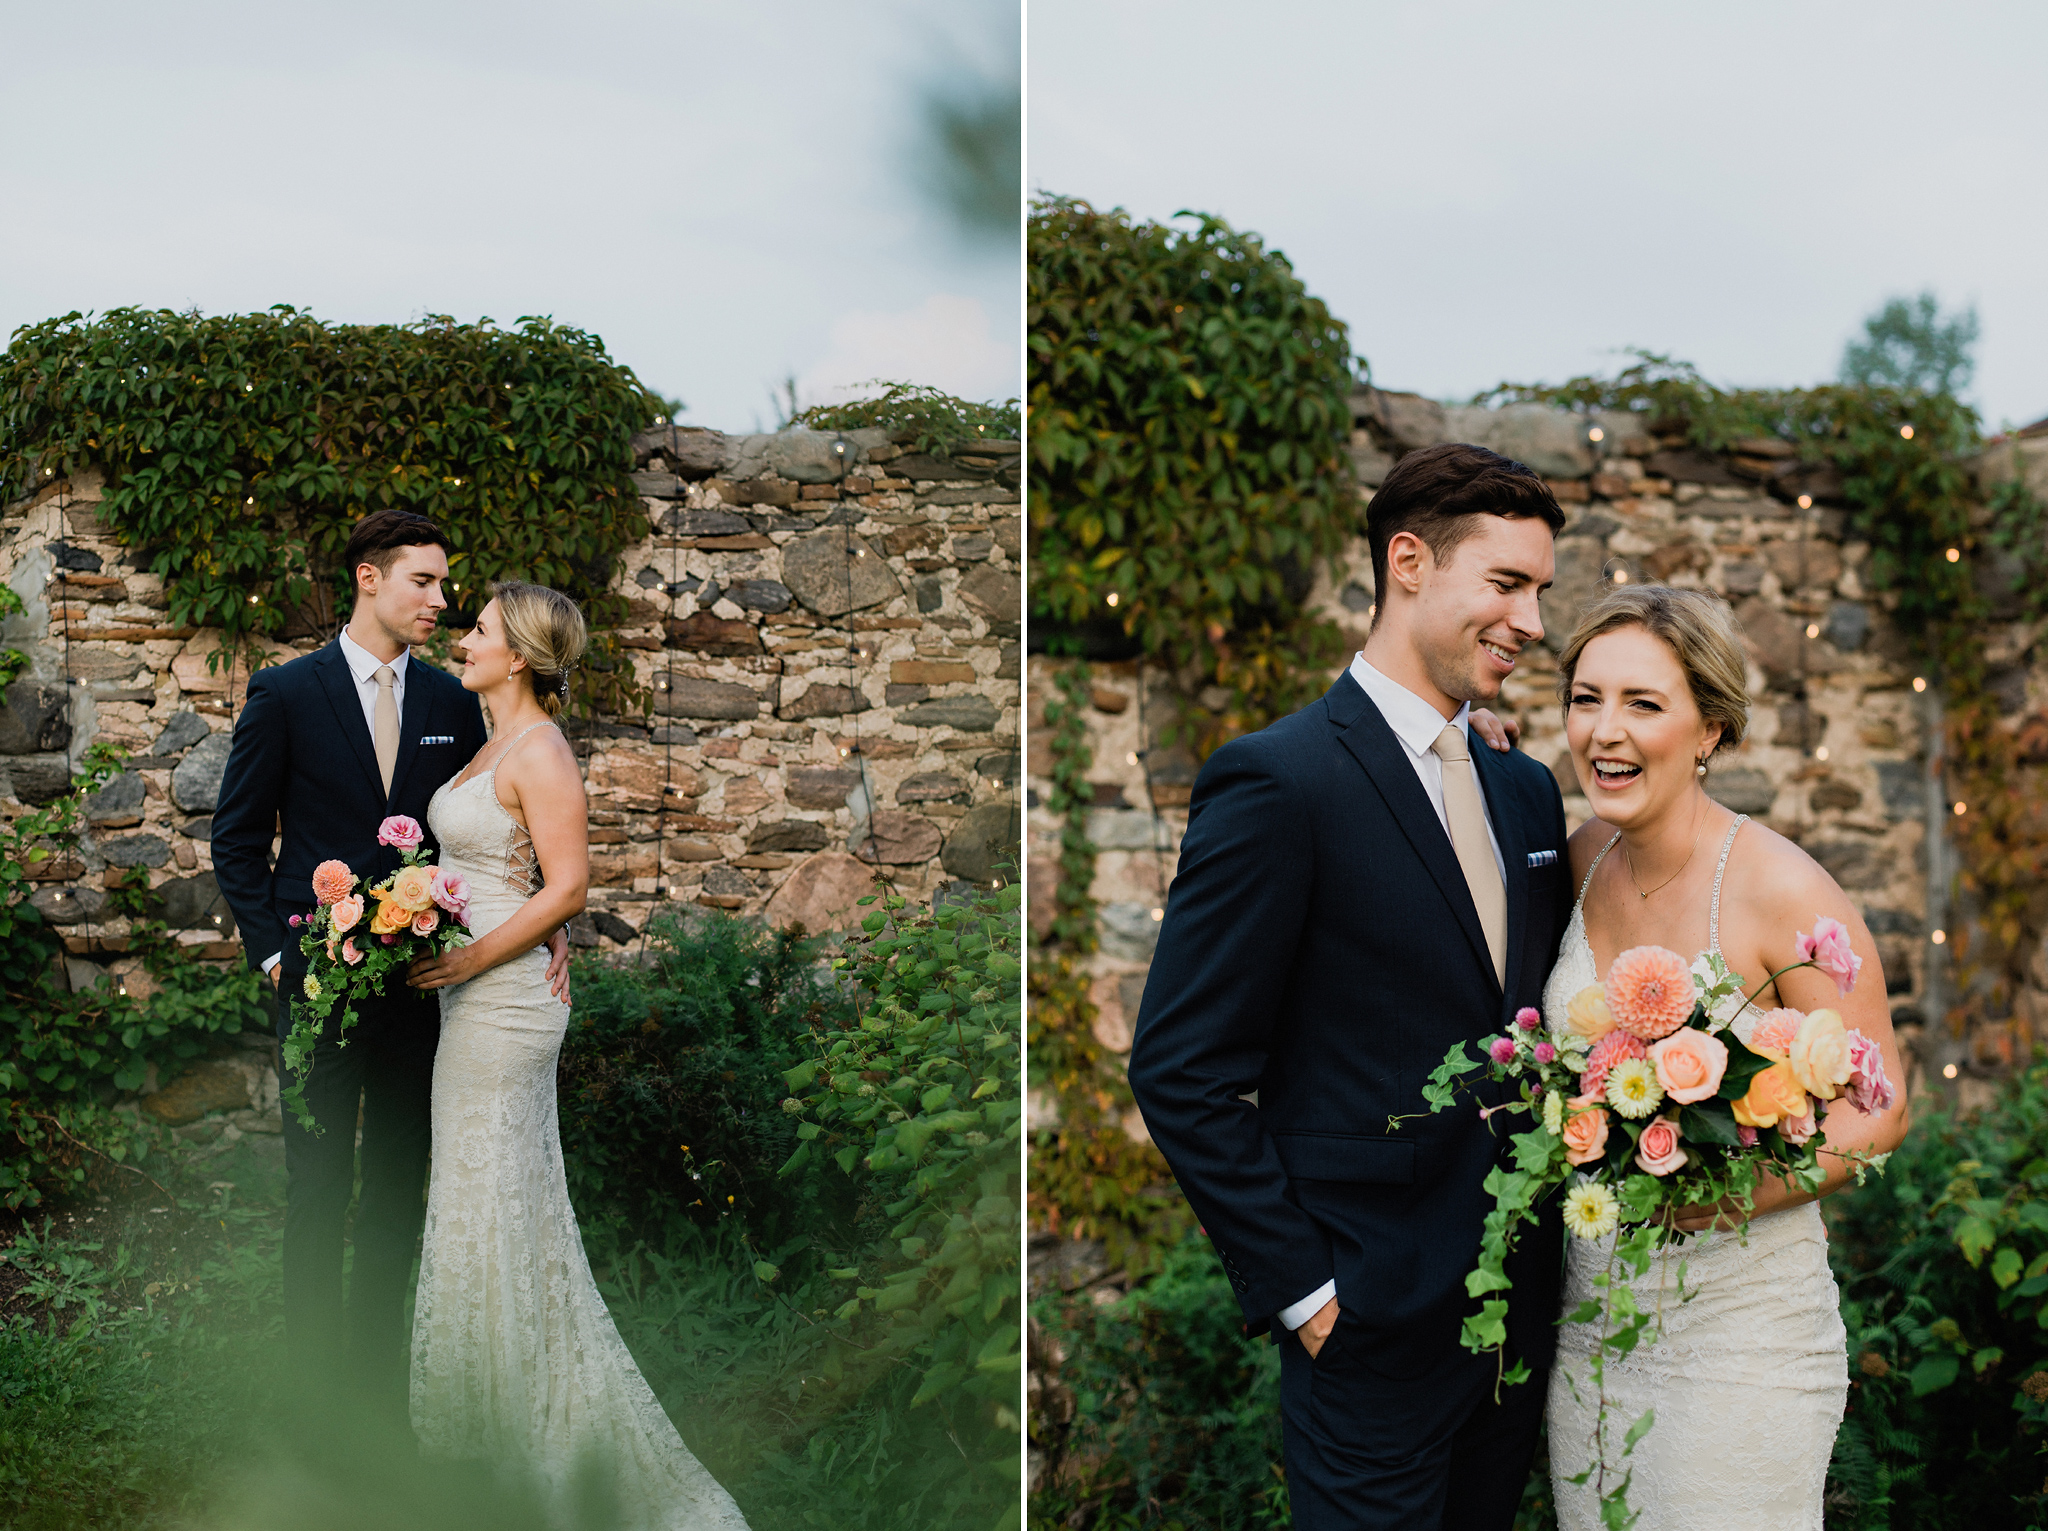 Romantic bride and groom porraits in the ruins at Coffin Ridge B